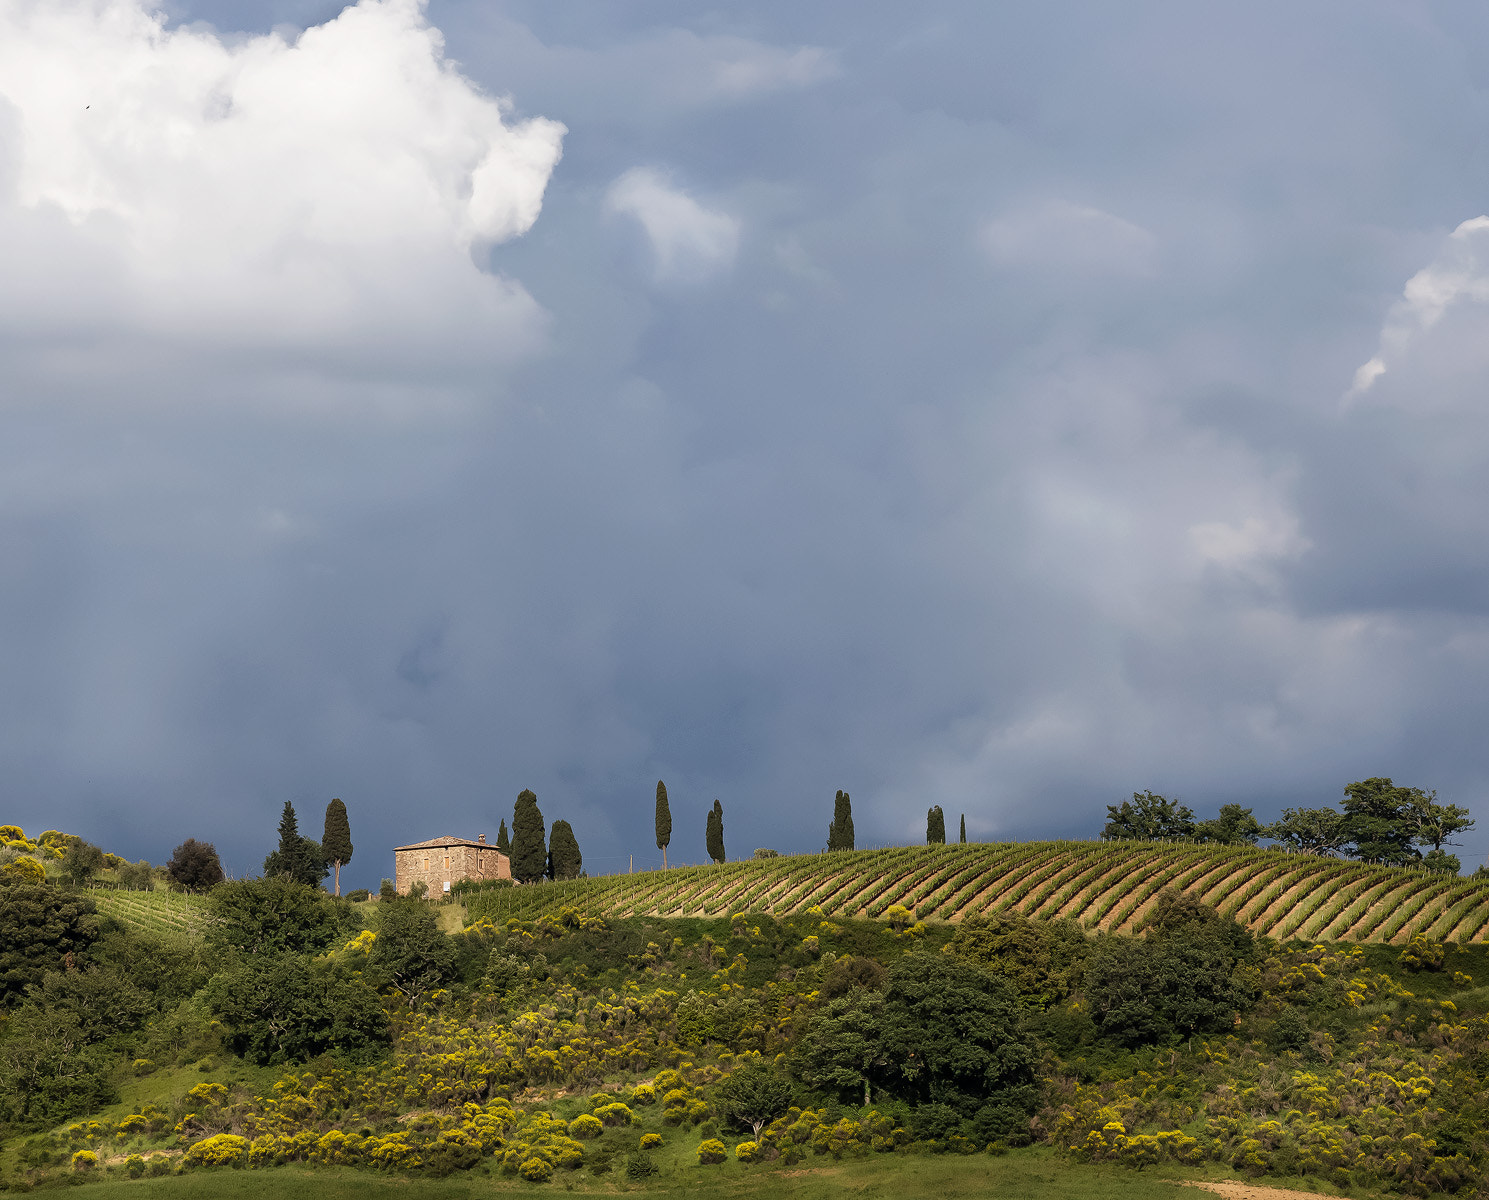 Photograph Rain clouds over Tuscany by nick mangiardi on 500px